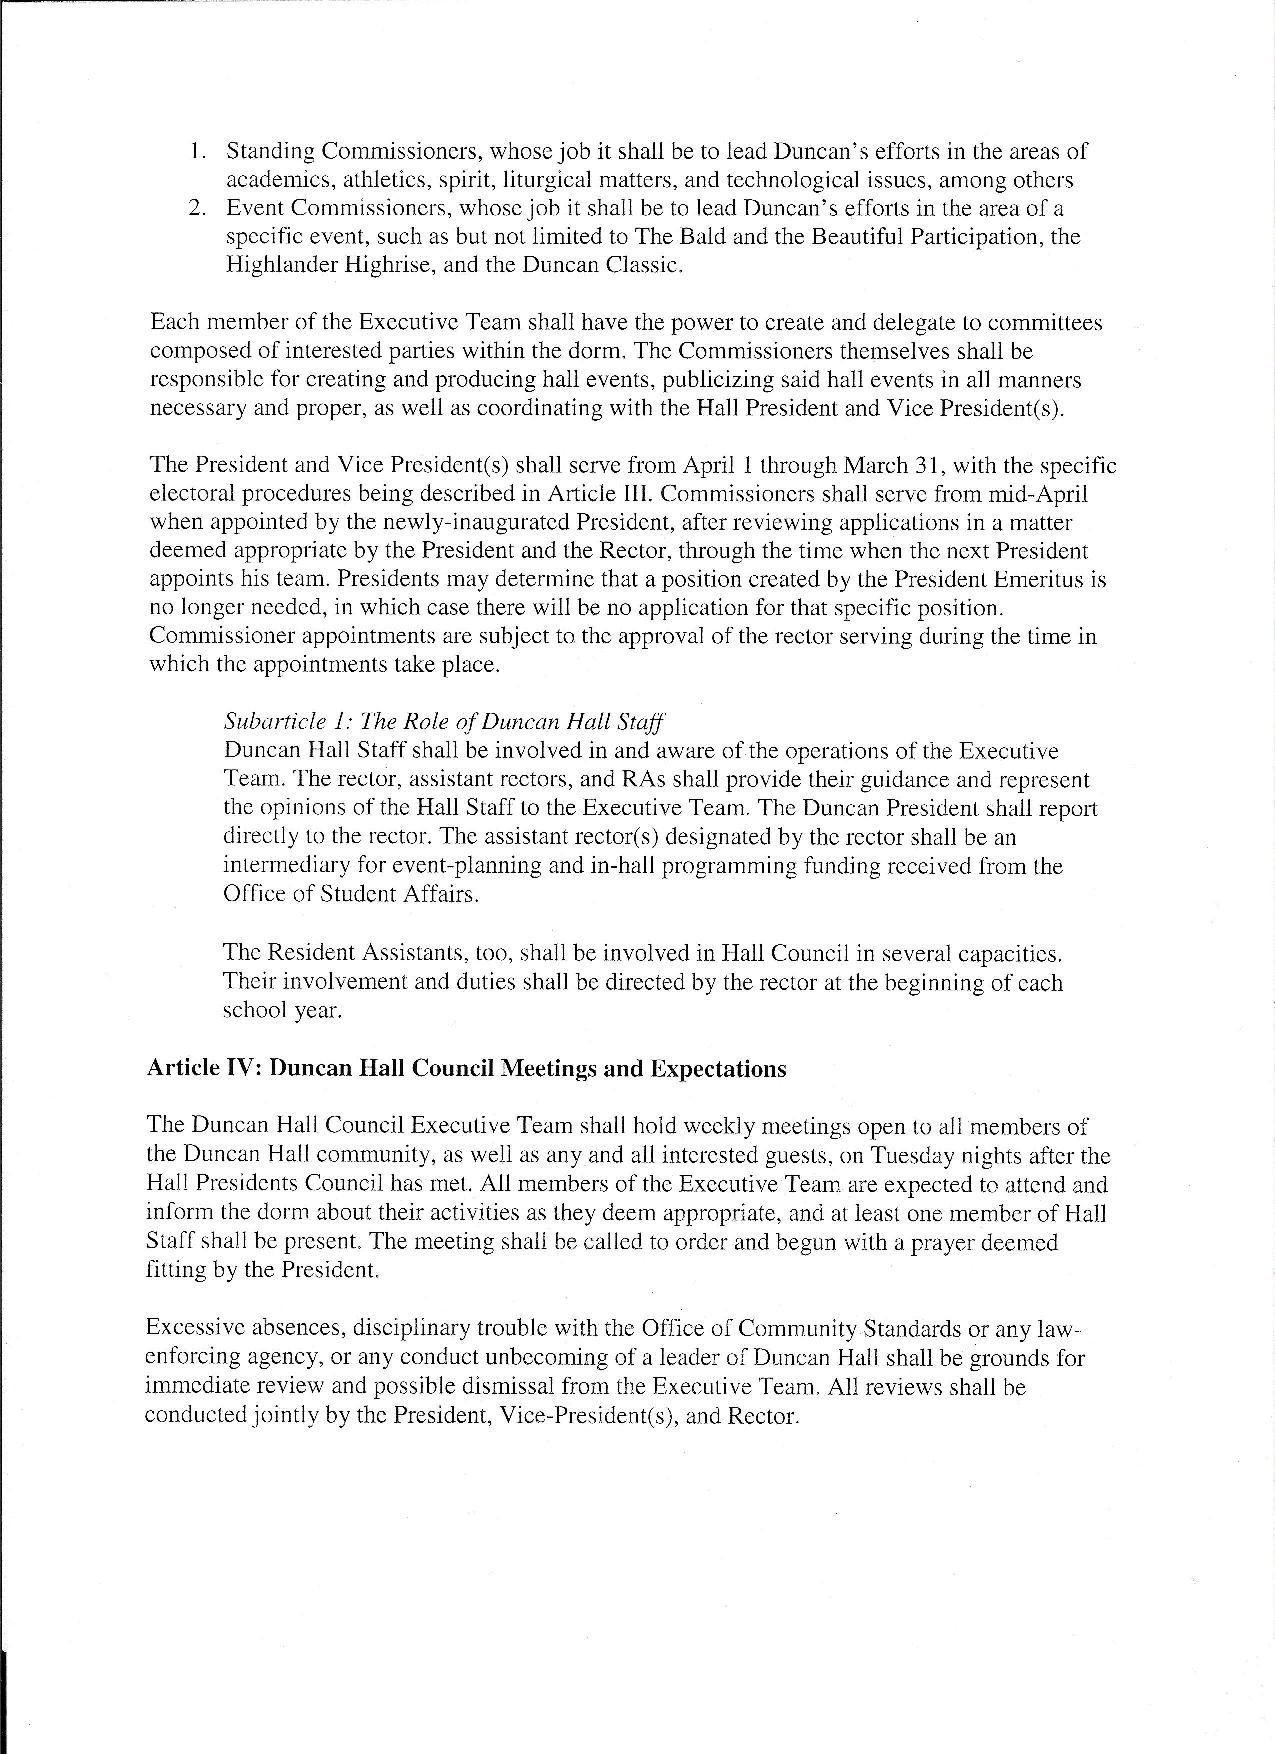 Duncan Hall Constitution April 2014-1-page-003.jpg